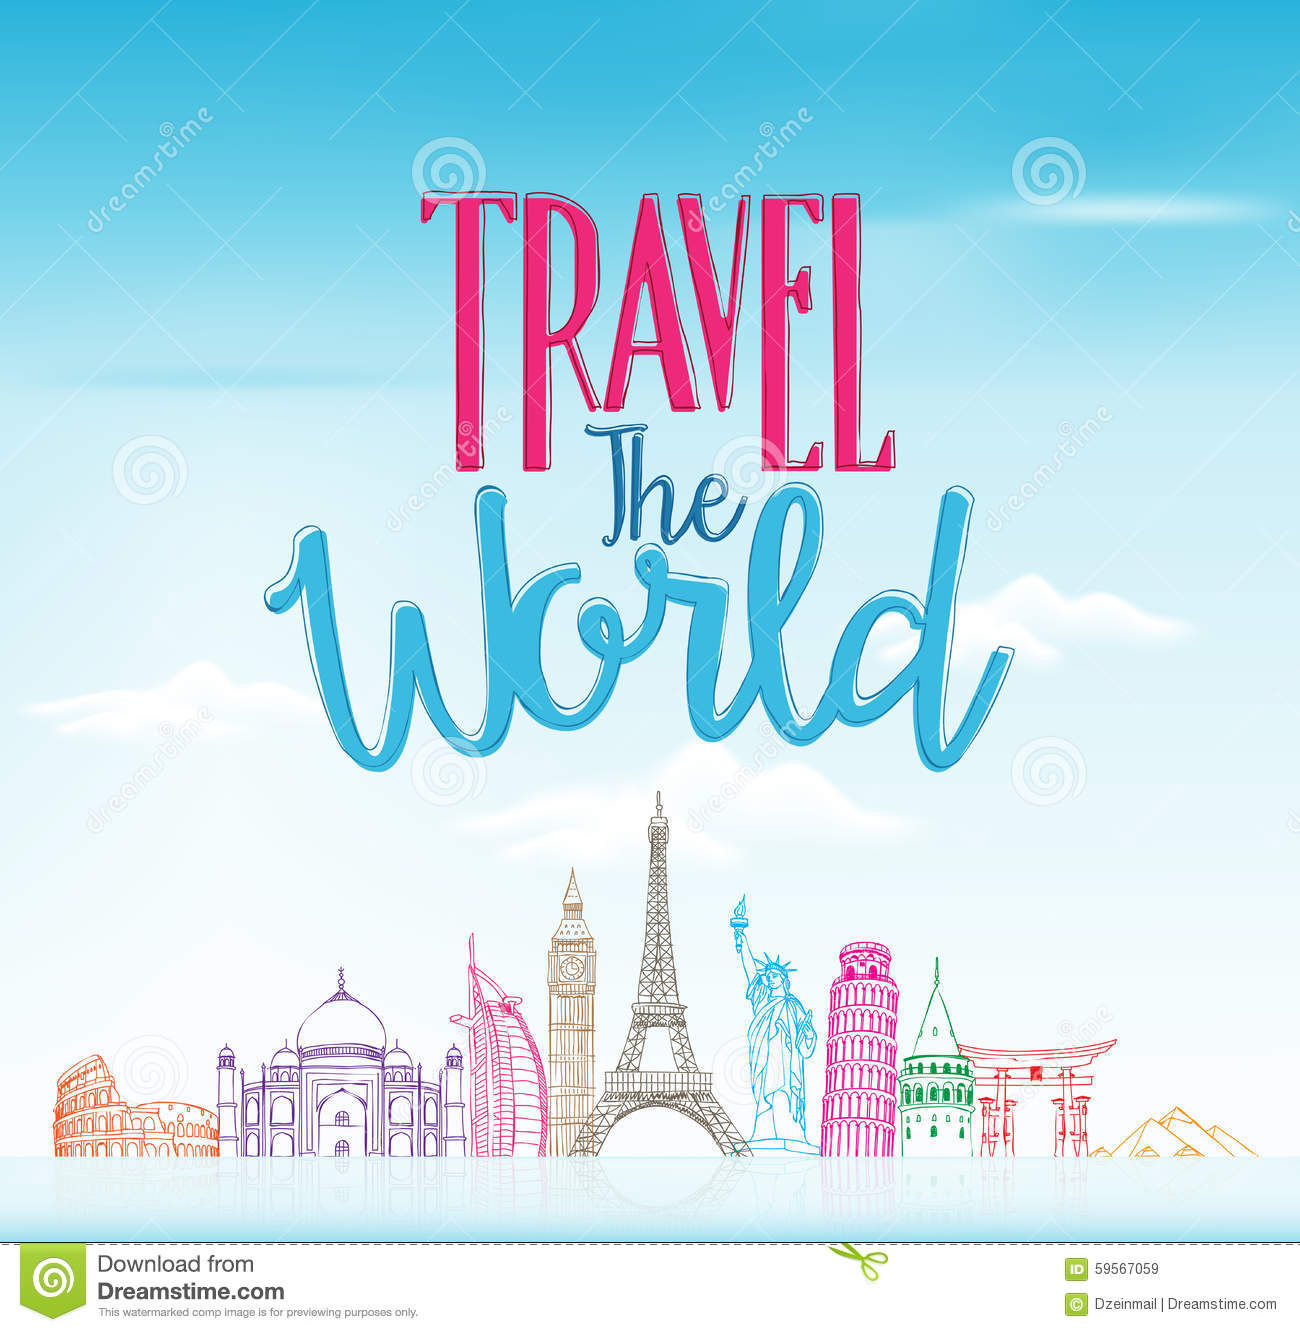 Travel the world concept design background of line drawing stock travel the world concept design background of line drawing journey hand kristyandbryce Gallery